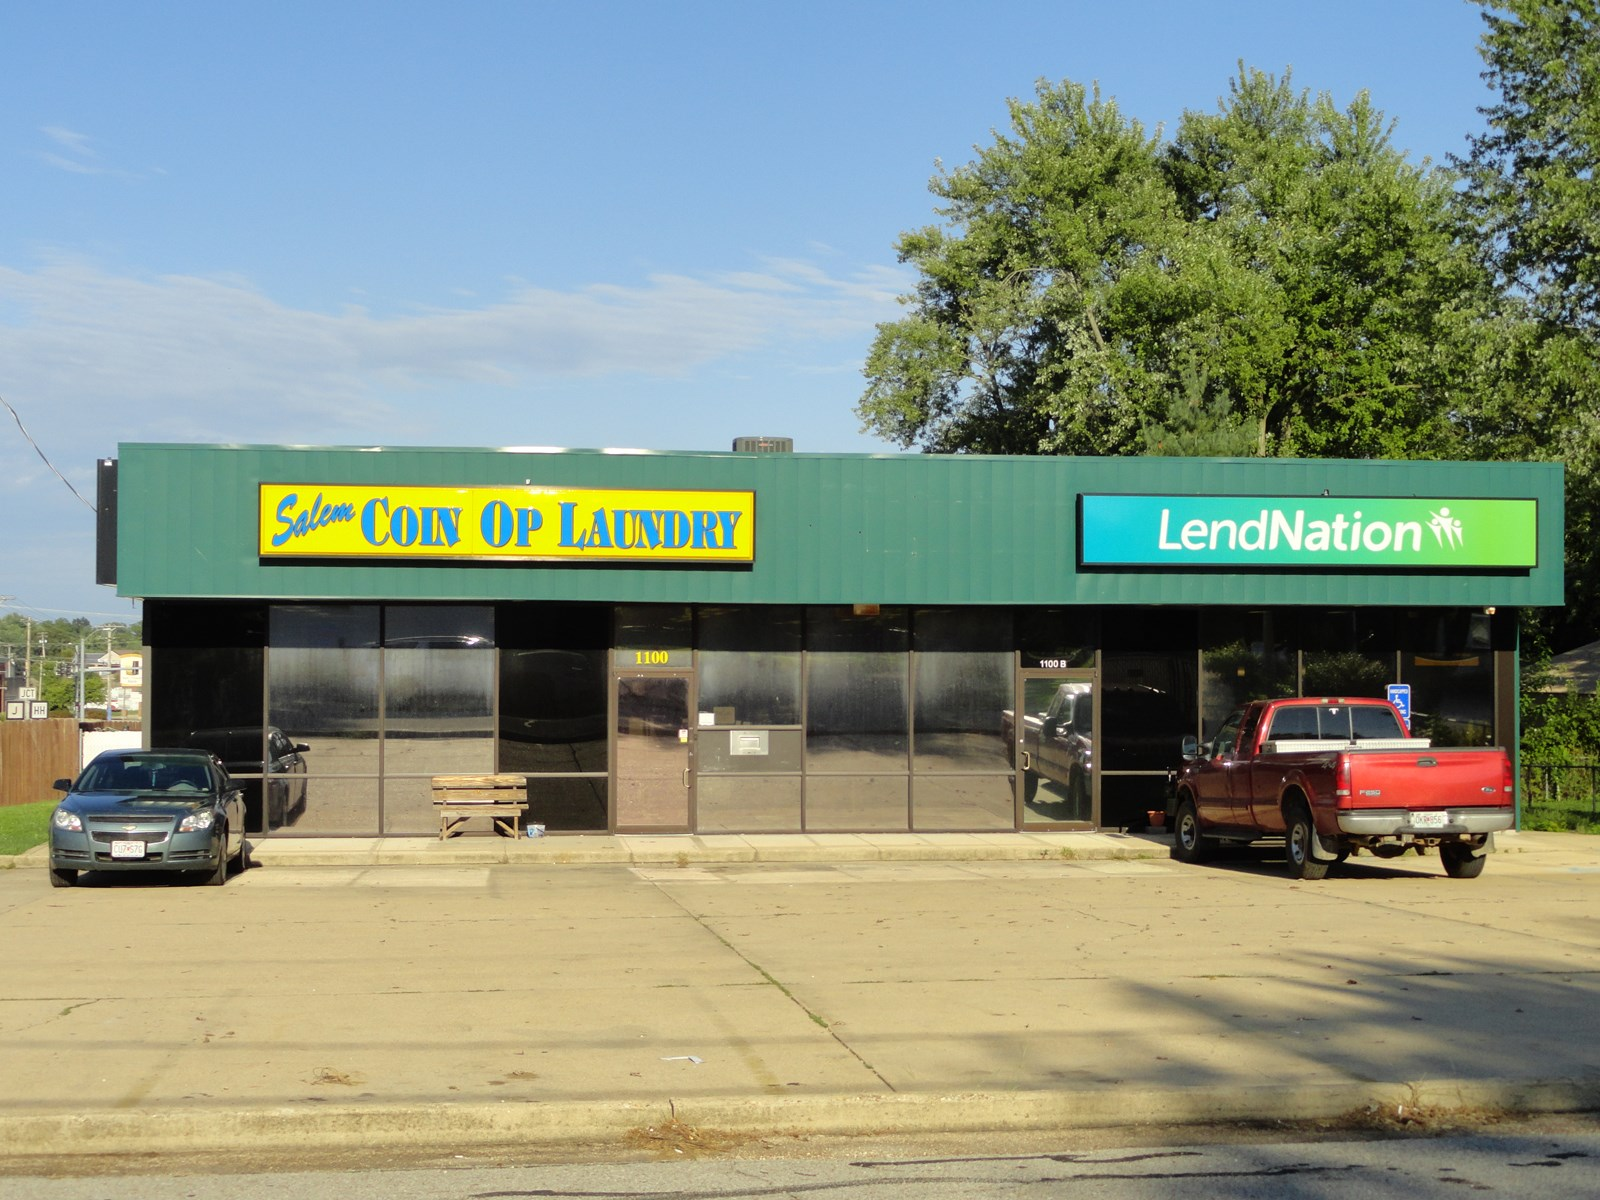 3500 sq ft of Investment Property located in Salem, MO.